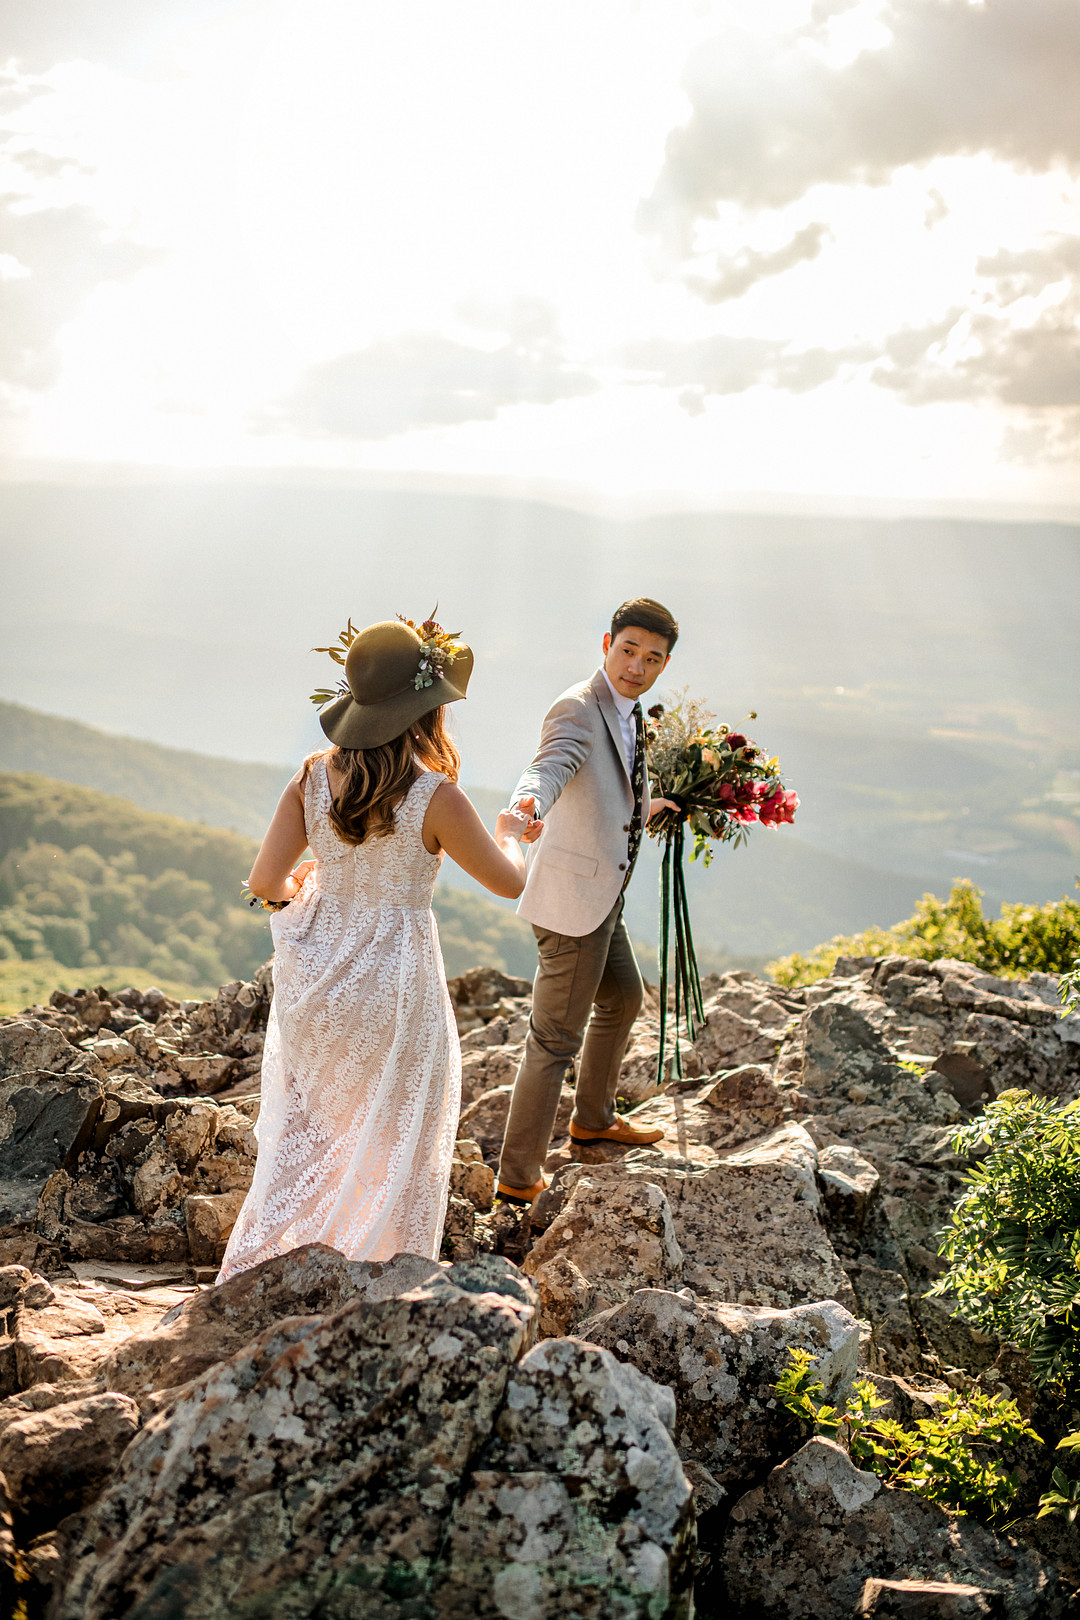 Boho Mountain Elopement in Shenandoah National Park_1001 Angles Photography_Shenandoah National Park Adventure Elopement-124_low